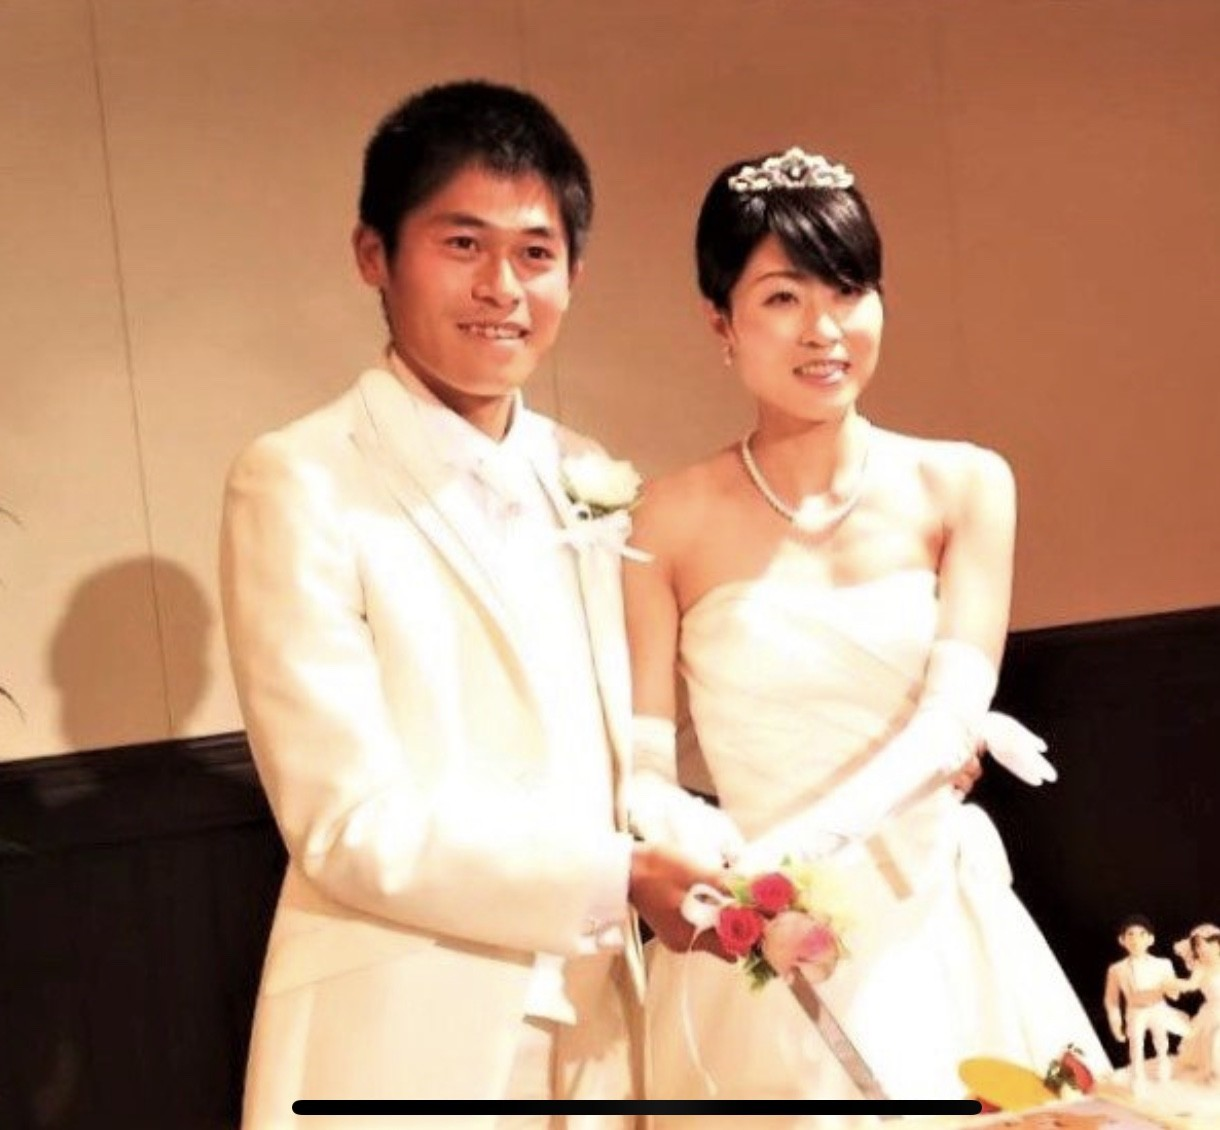 Yuki and Yuko have known each other for 11 years and today they got married